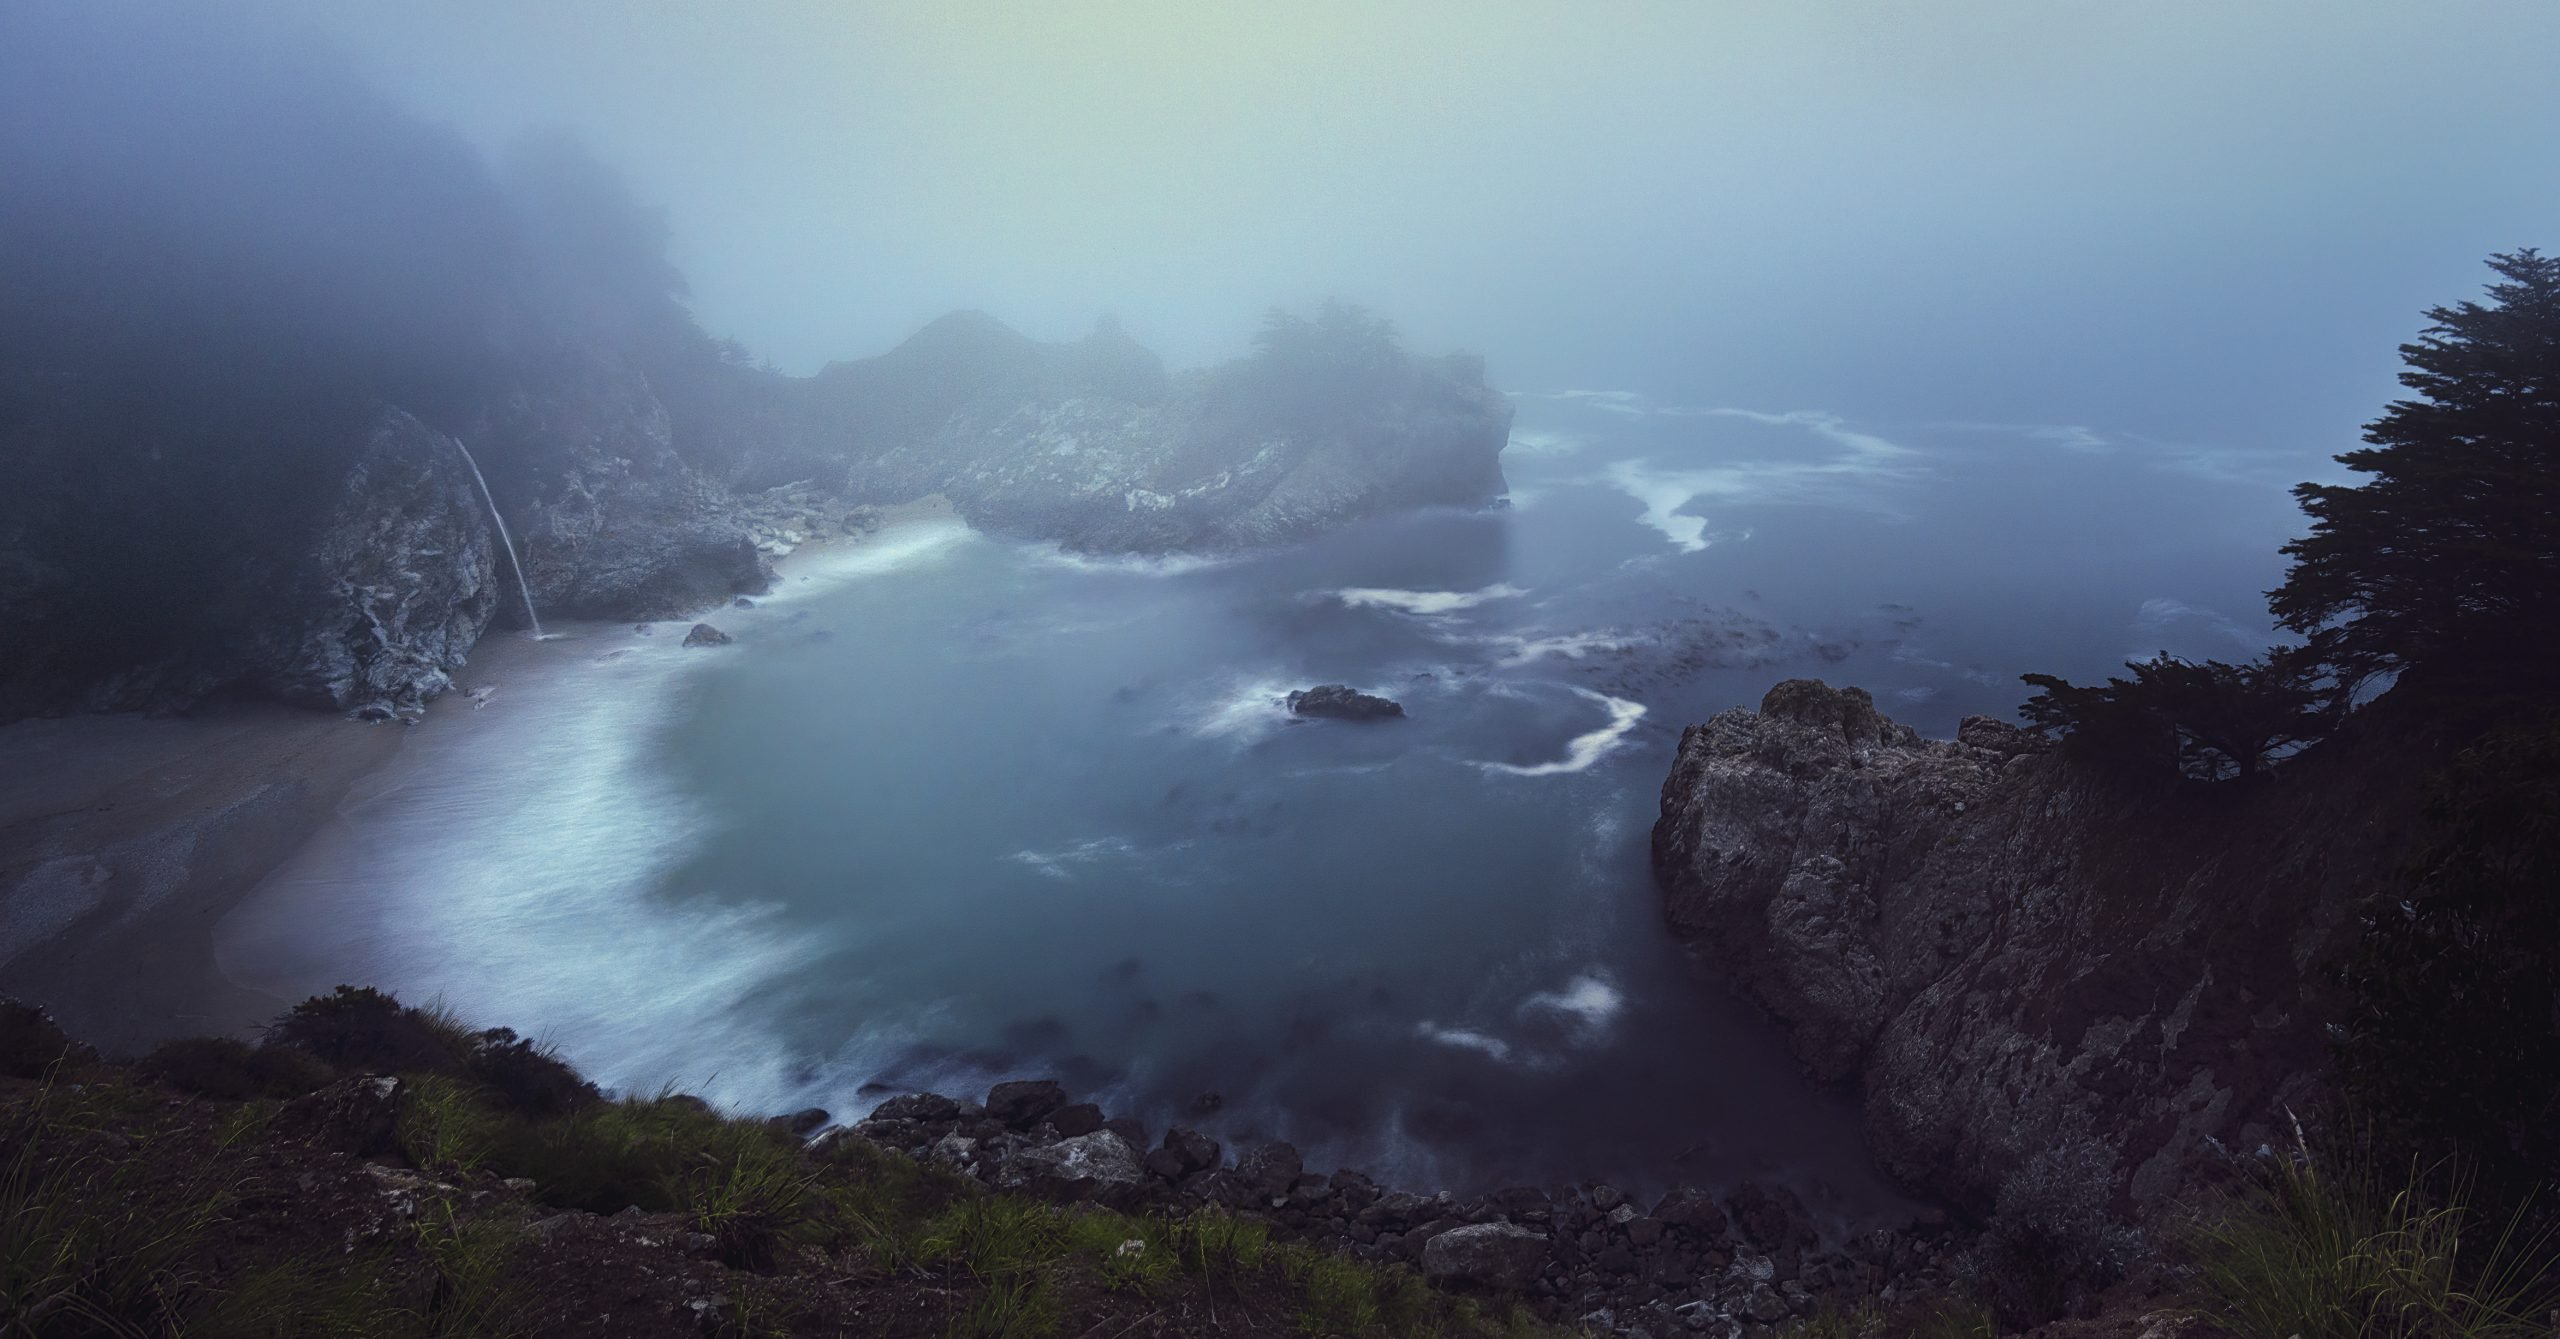 McWay Falls in the fog #intentionallylost